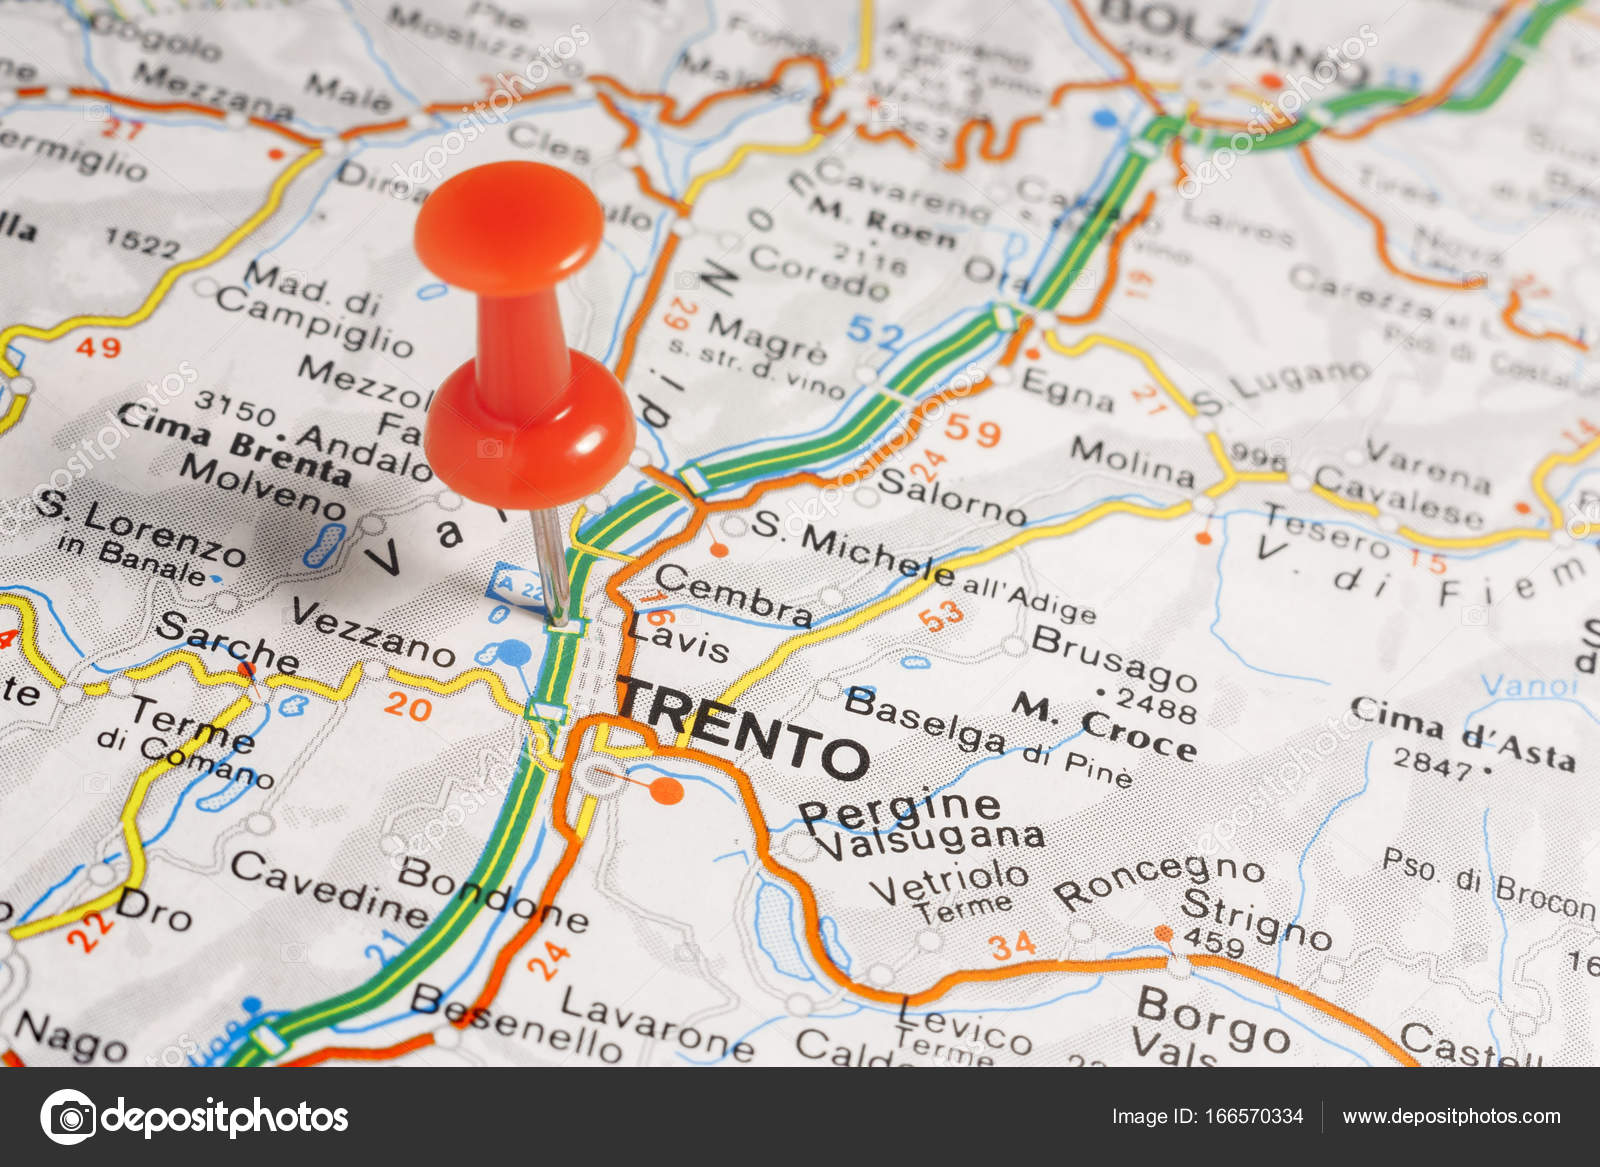 Trento pinned on a map of Italy Stock Photo maior 166570334